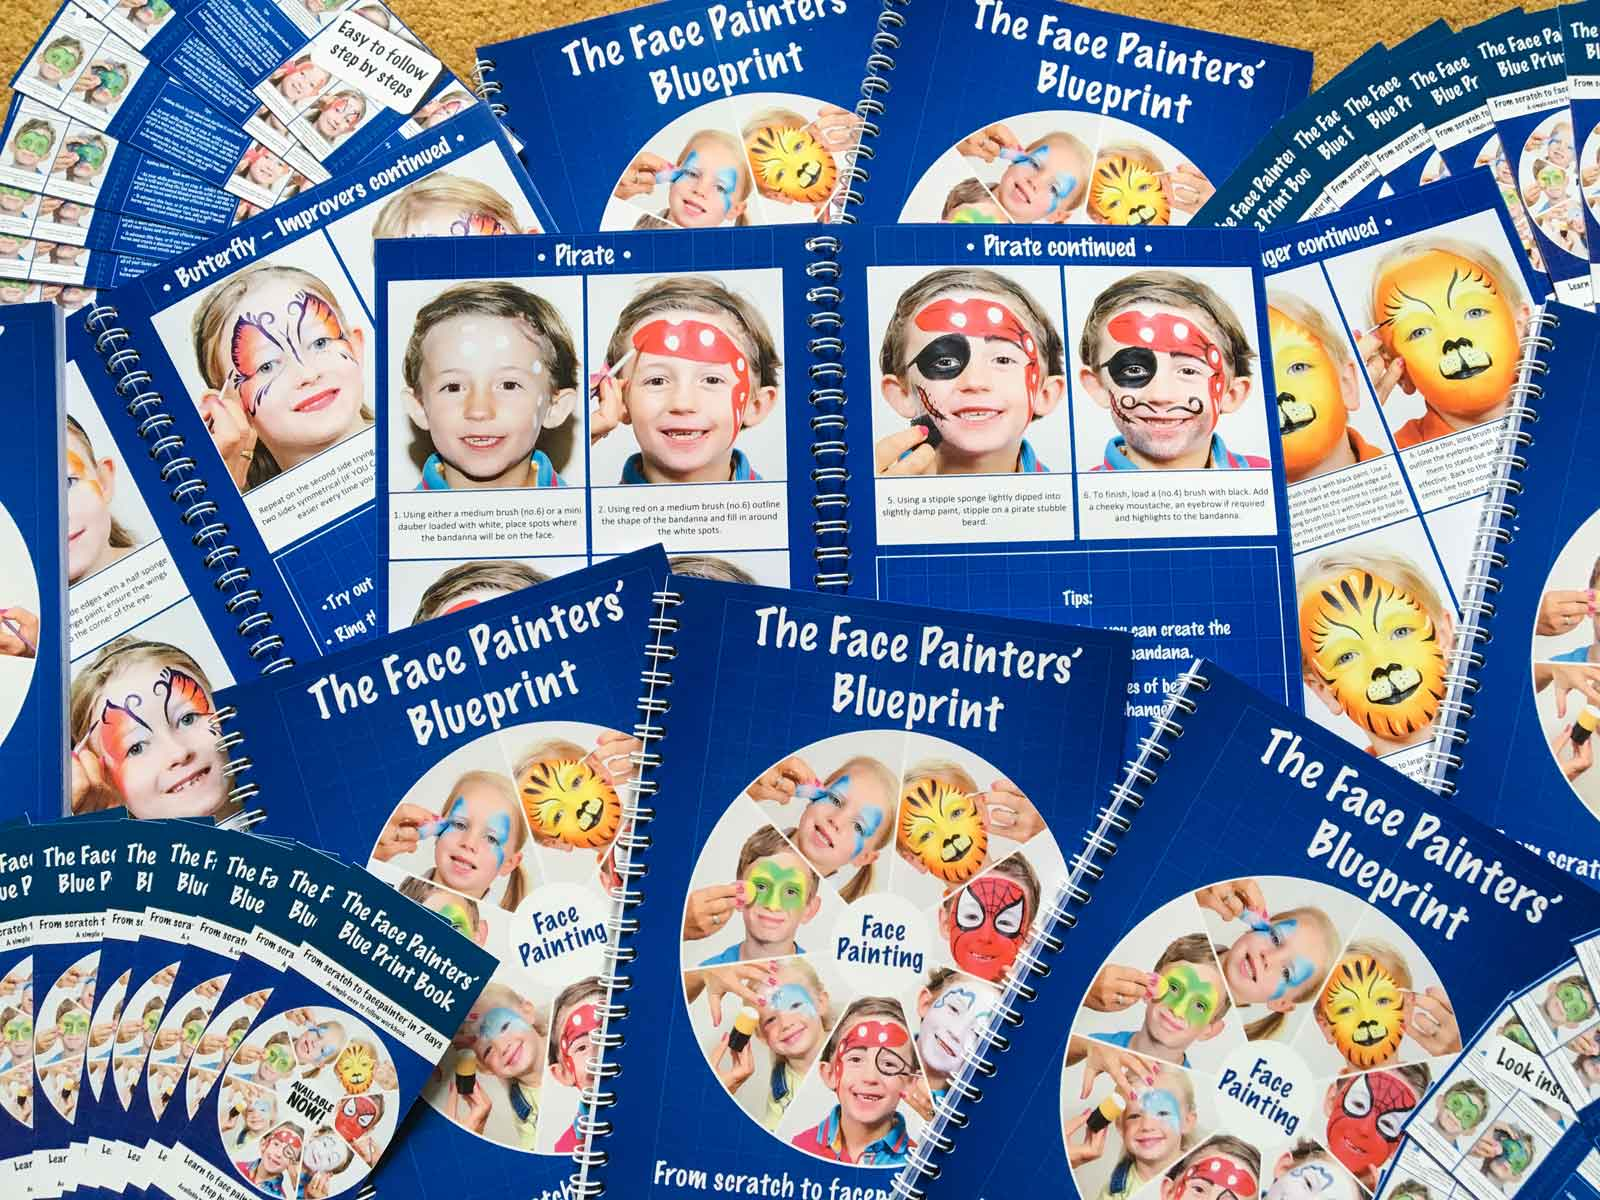 The Face Painters Blueprint Book